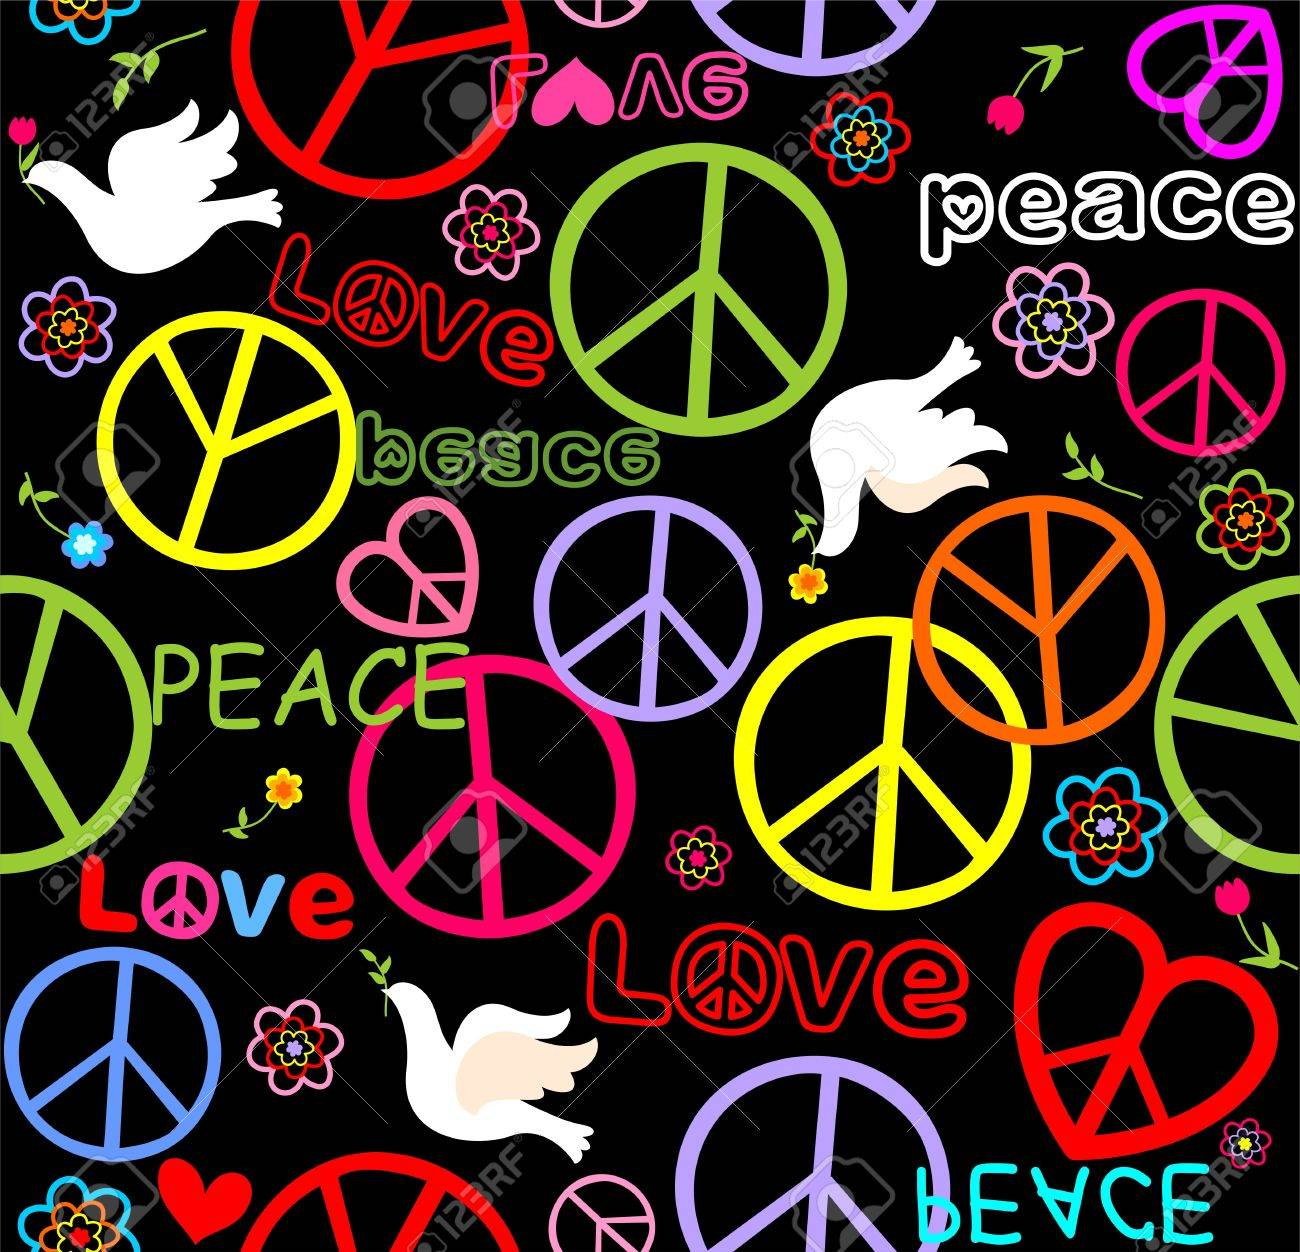 Hippie paper wrapper with peace symbols and doves royalty free hippie paper wrapper with peace symbols and doves stock vector 72778146 biocorpaavc Images